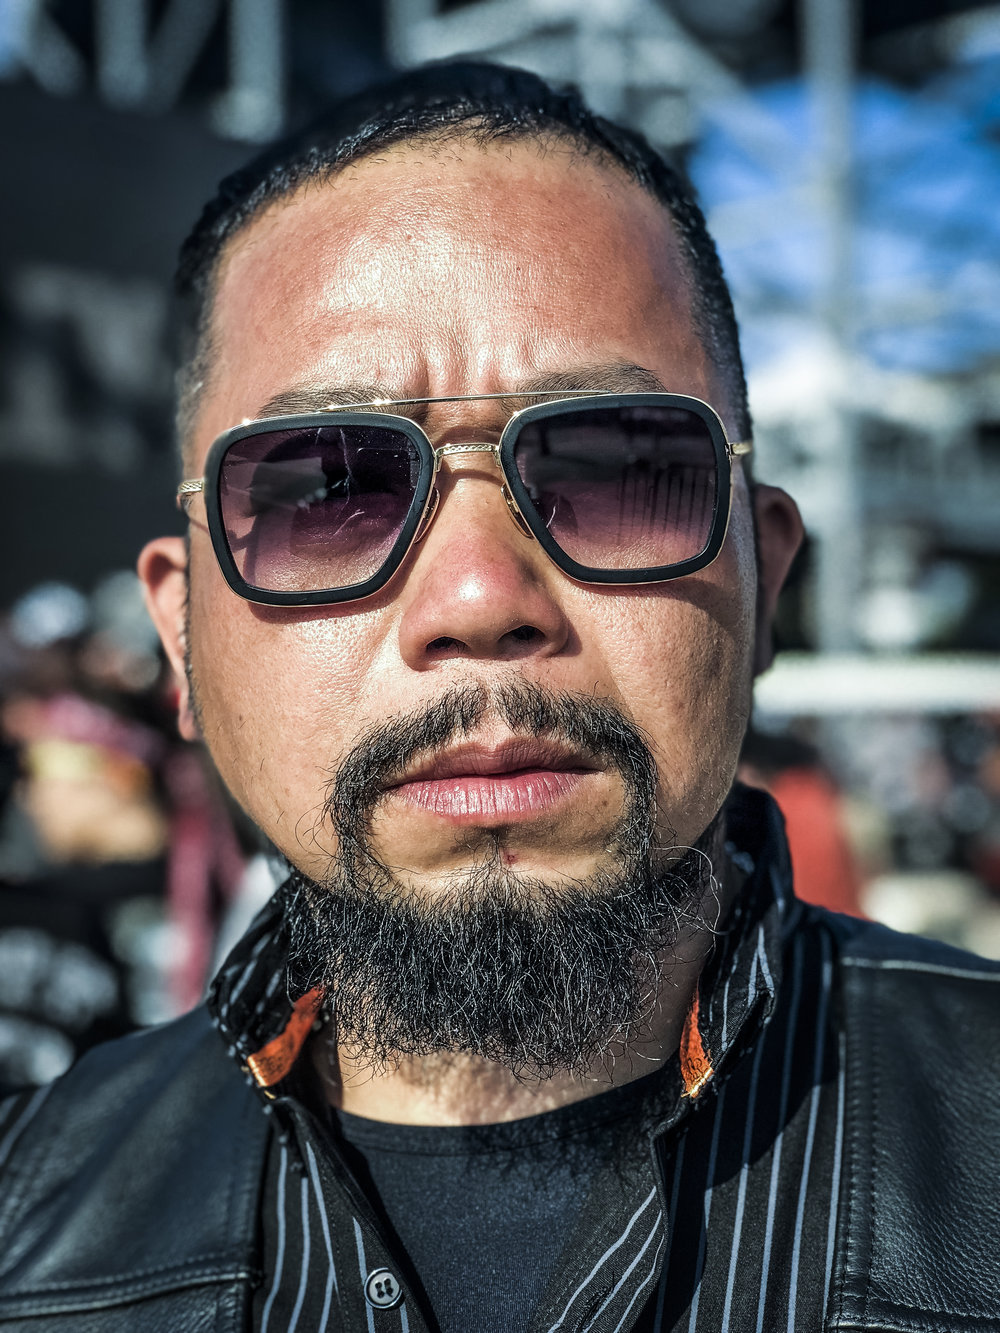 Louis Lee: He lives in Taichung City, Taiwan. He came with the Taiwan HOG Chapter and rode to the event from NYC with the NYC HOG chapter. He ides a breakout back home, but rode a roaching while here. He is the owner of Slick Barber Shops. I heard that they are excellent riders and all round great guys